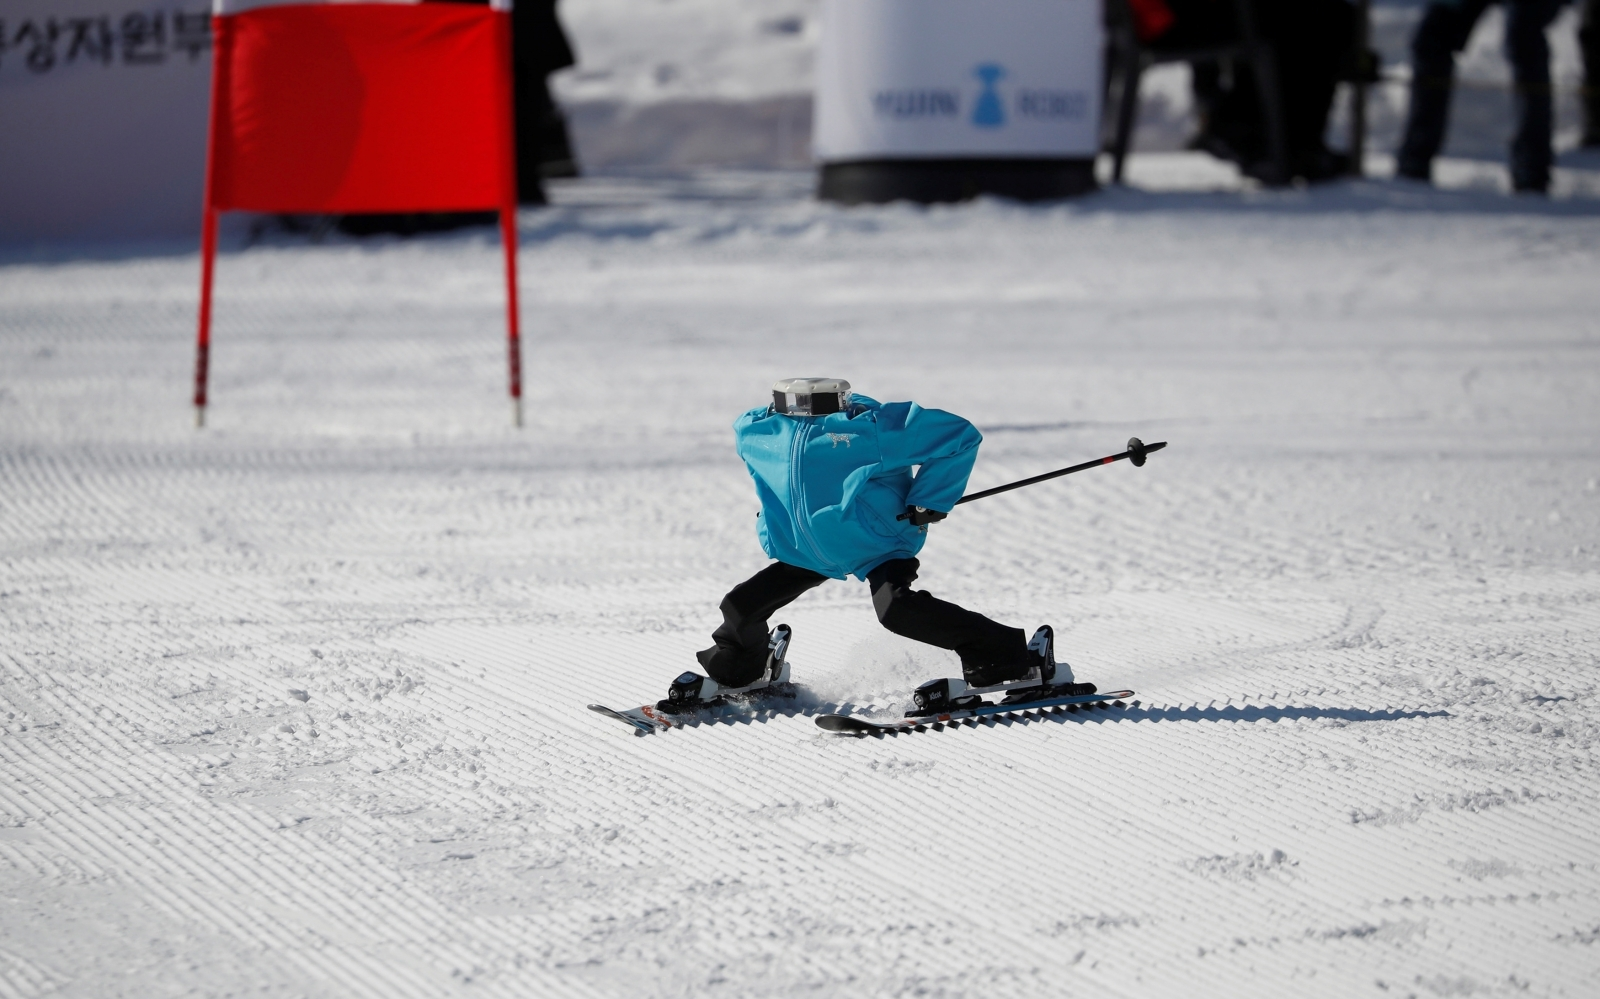 Winter Olympics 2018: Robots take to the slopes on sidelines of Games